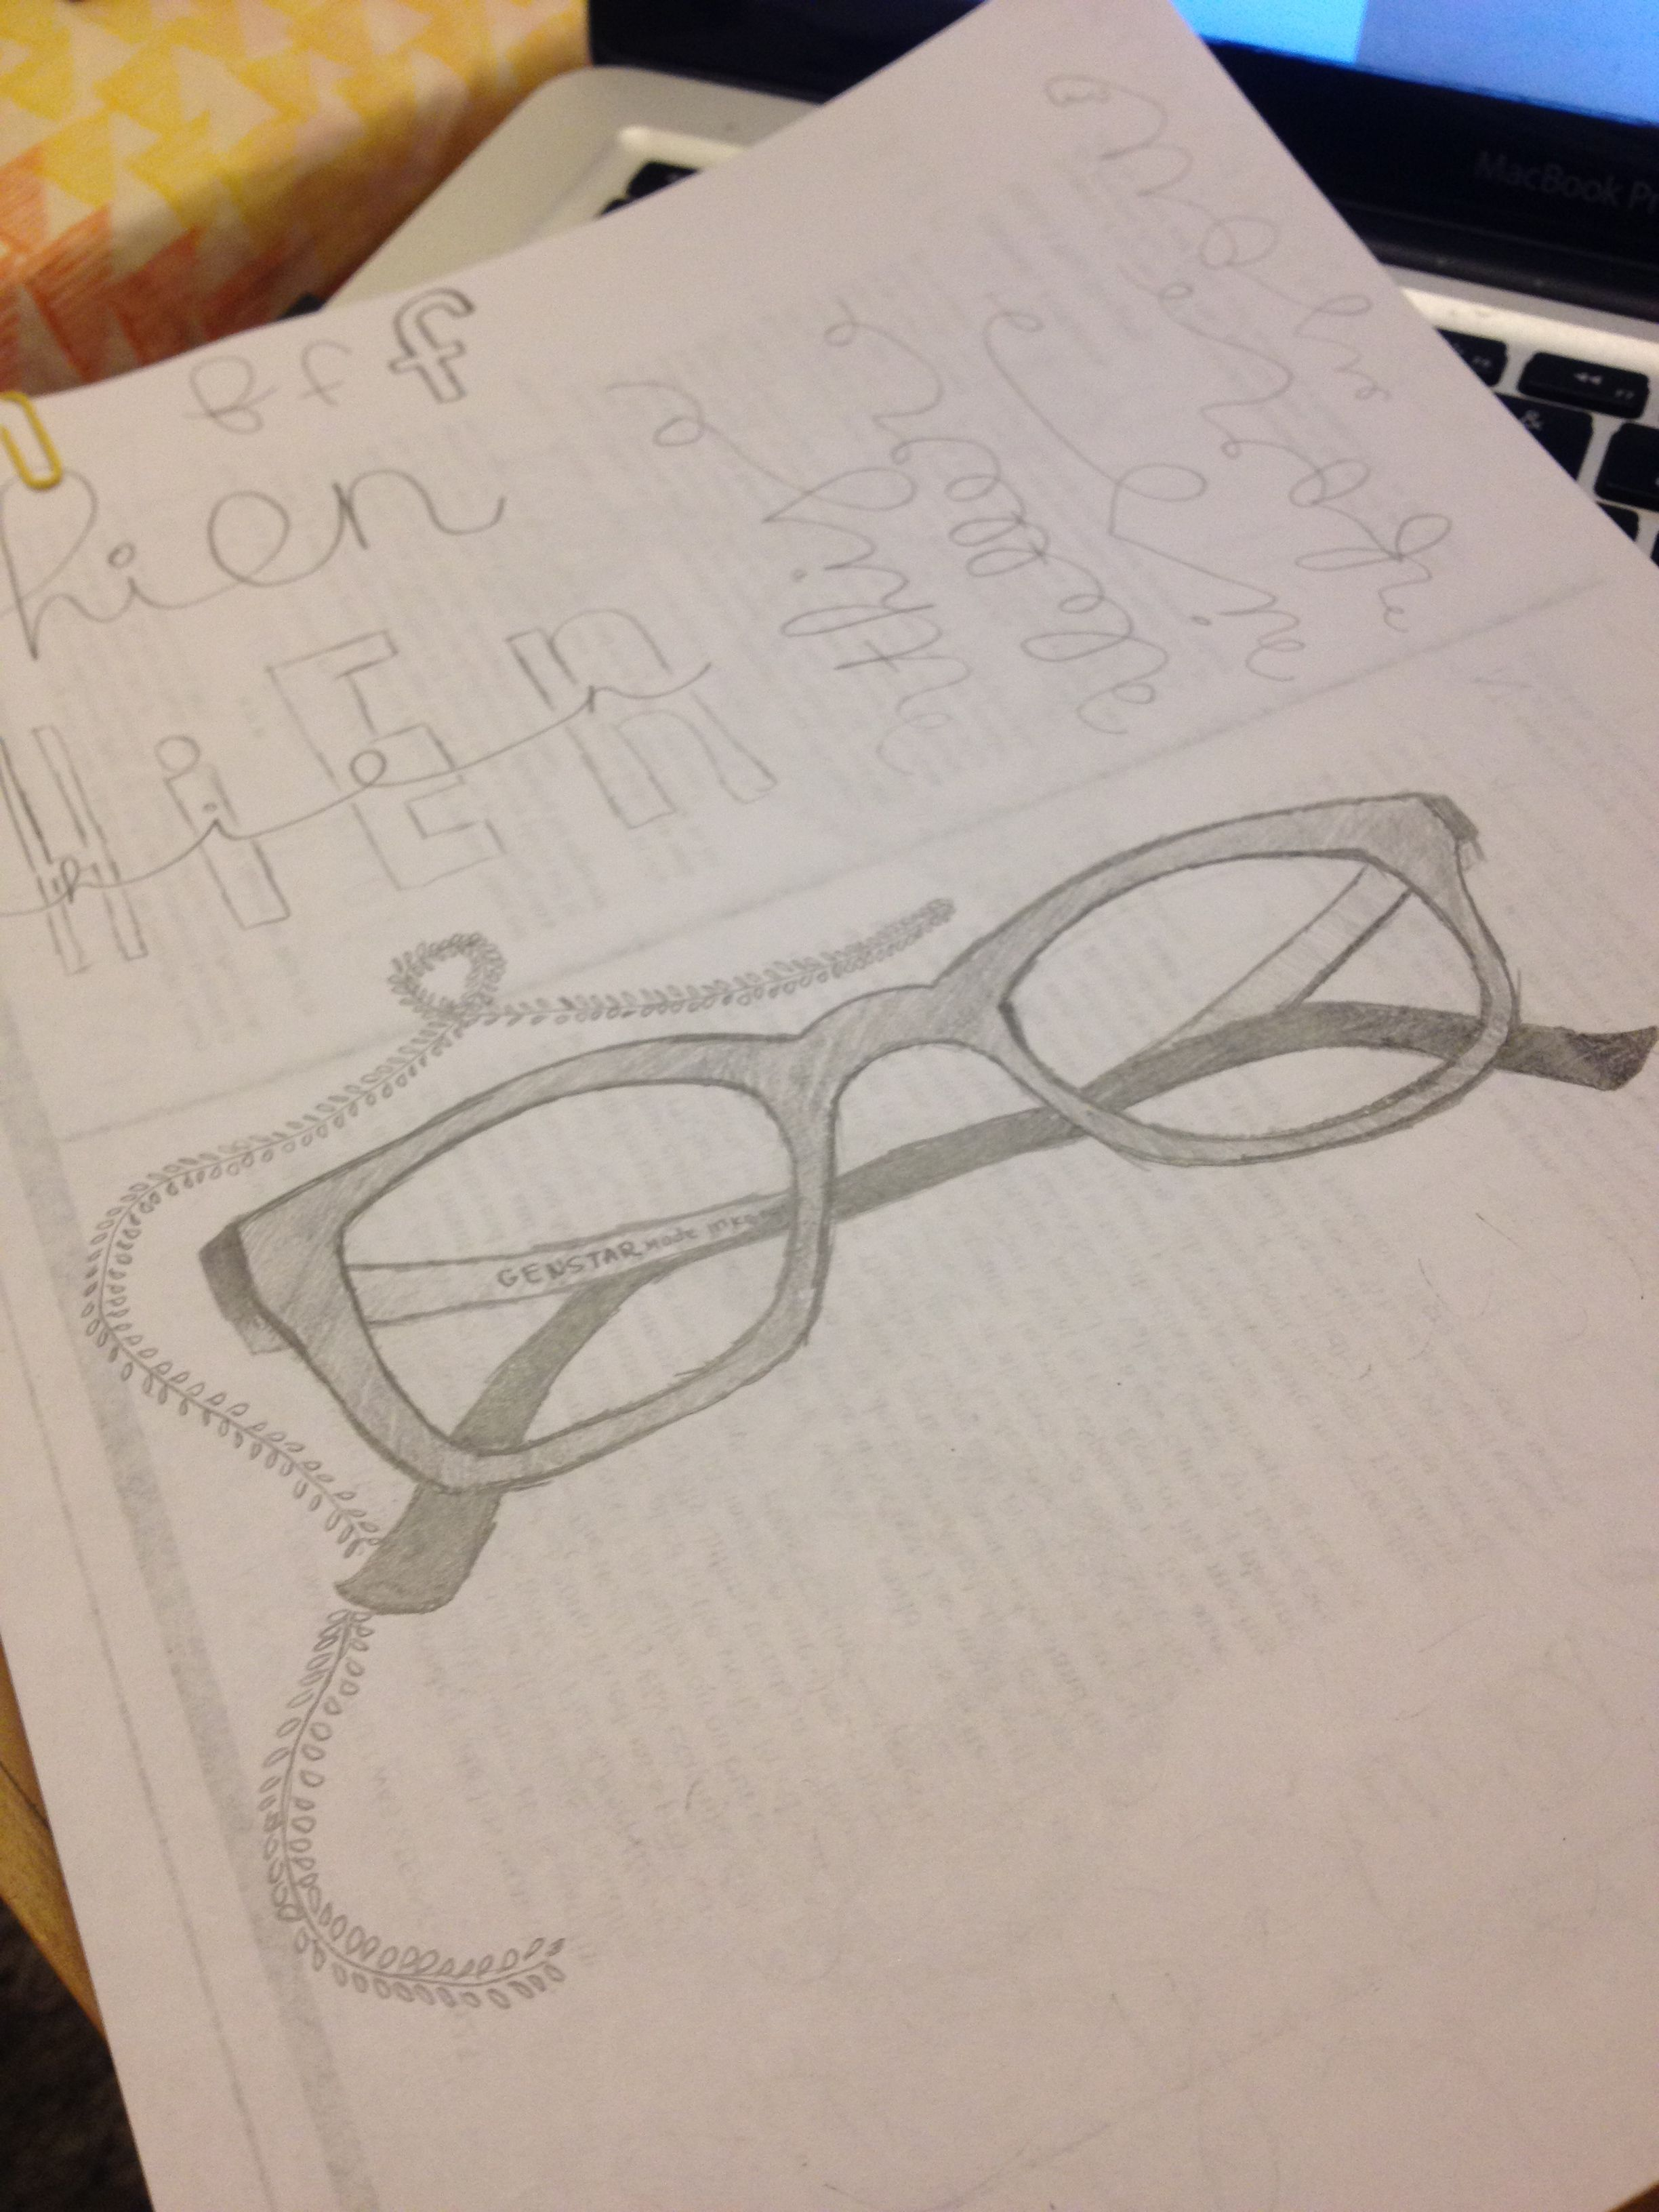 I'm sorry that this was not a hand lettering practice. Just a pair of my glasses lol. I'm not an artist, and I try my best to be creative. Plus, I was just bored waiting for class to start :)